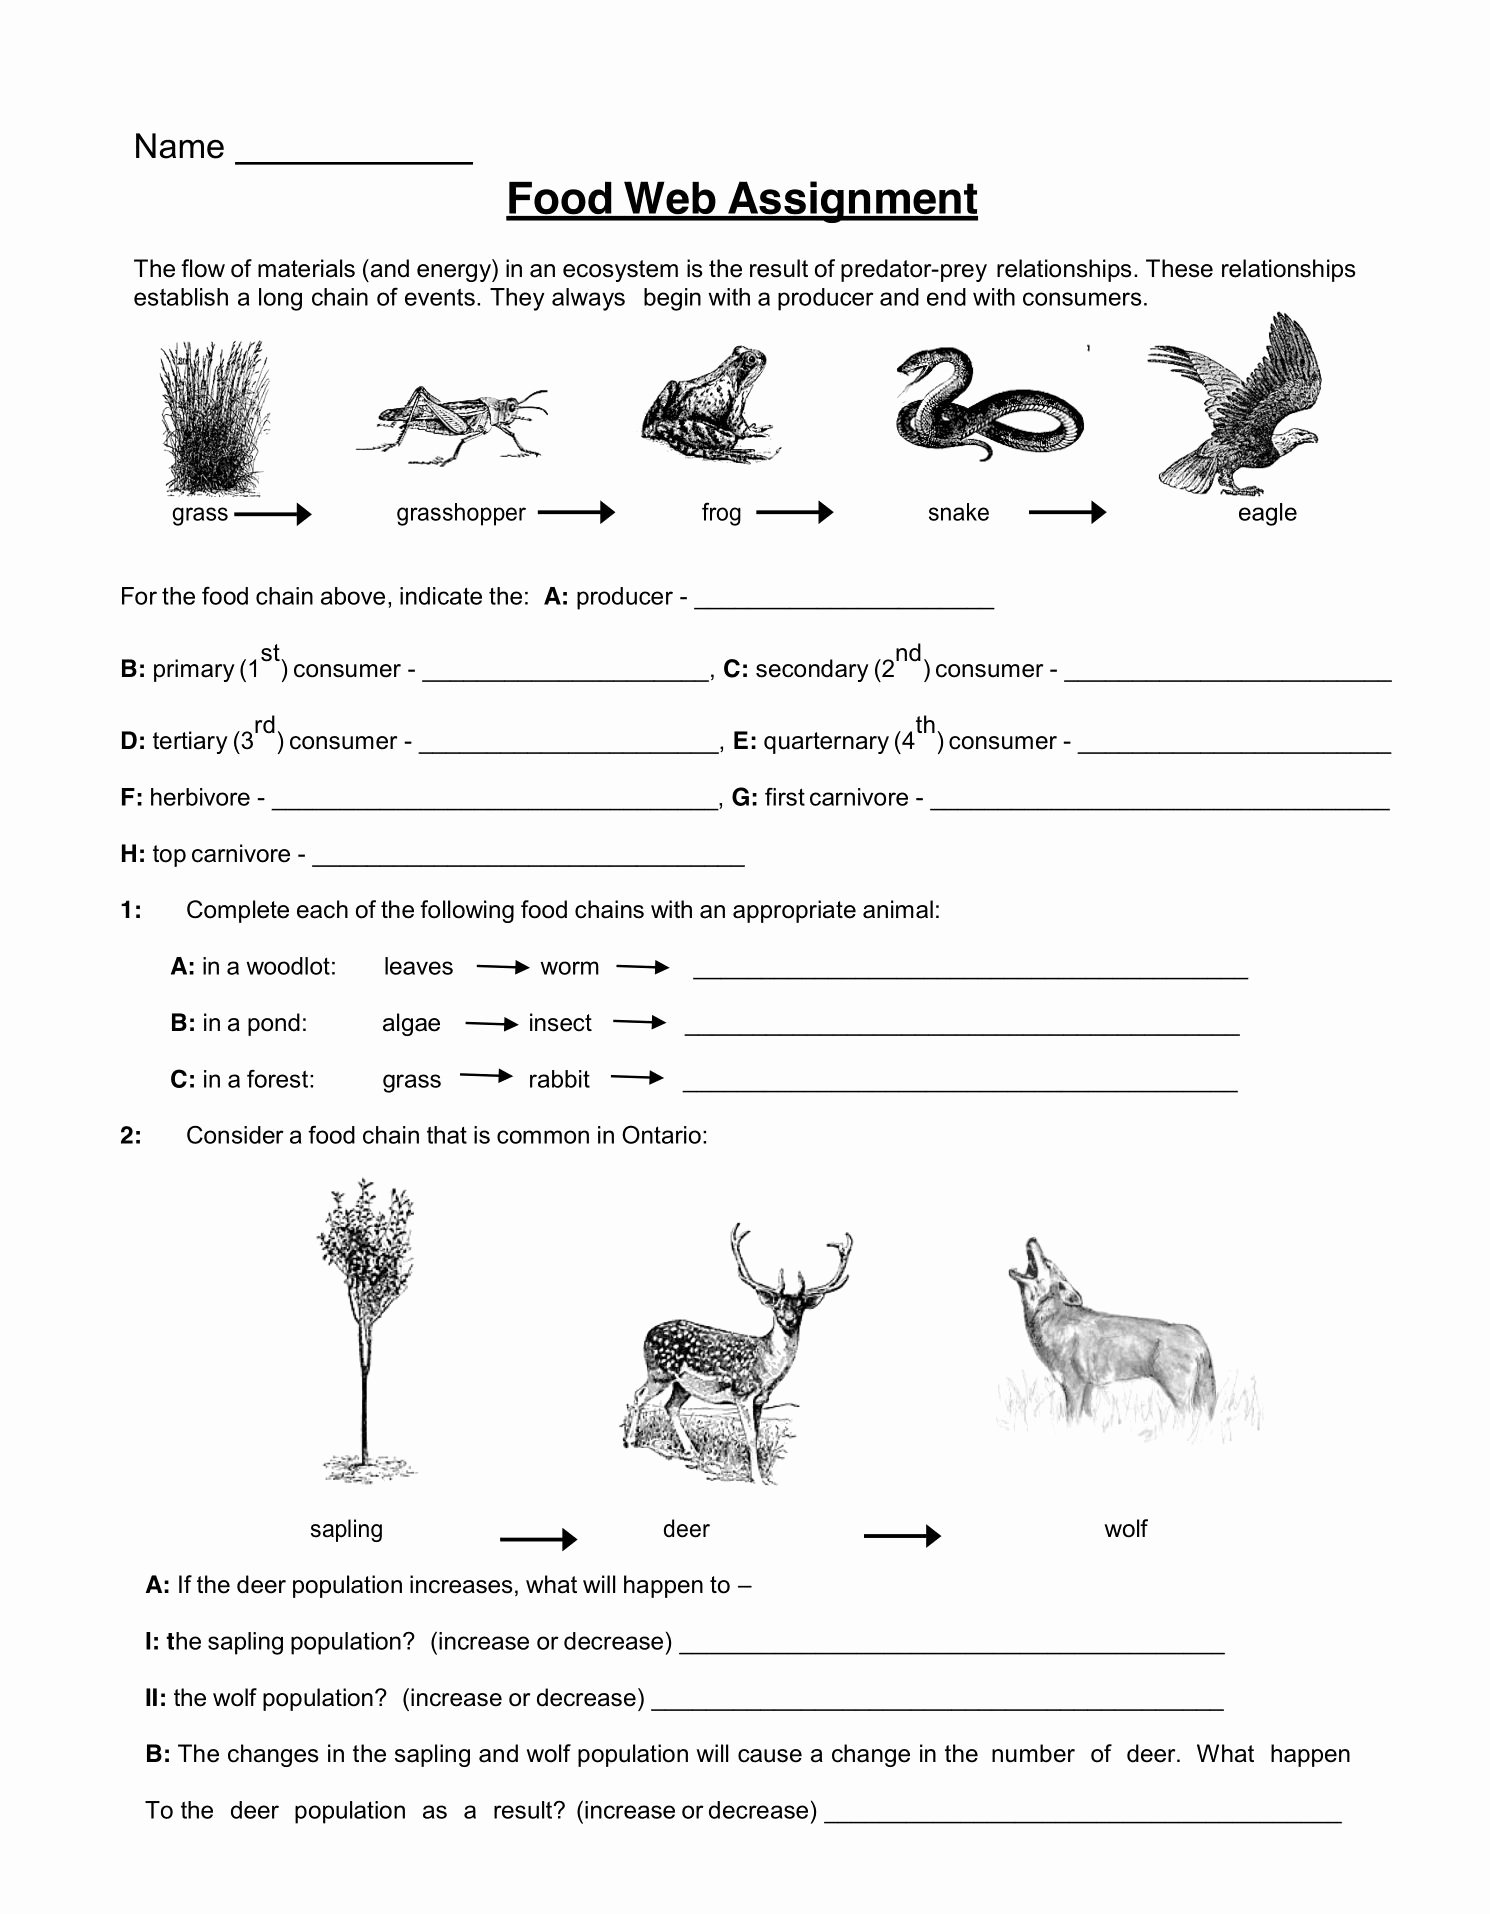 Food Chains and Webs Worksheet Kids Food Web assignment Worksheet Tuesday May 28 2019